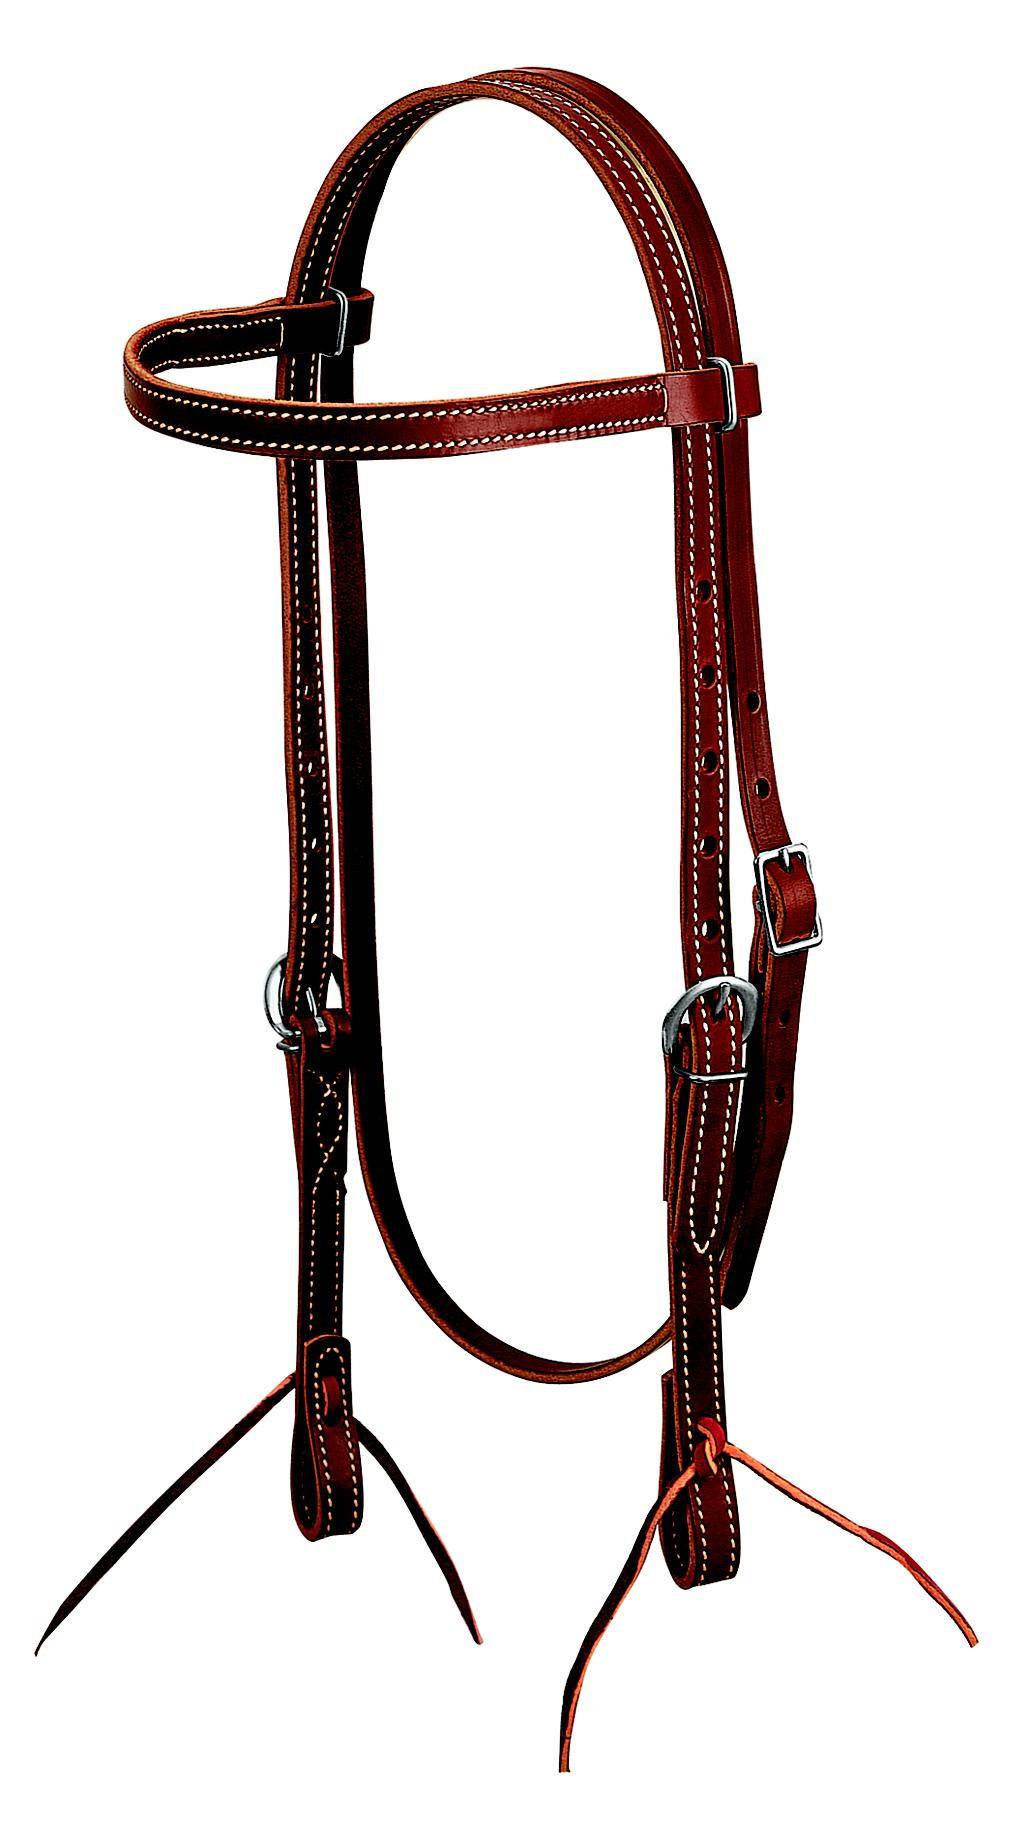 Weaver Leather Latigo Browband Headstall